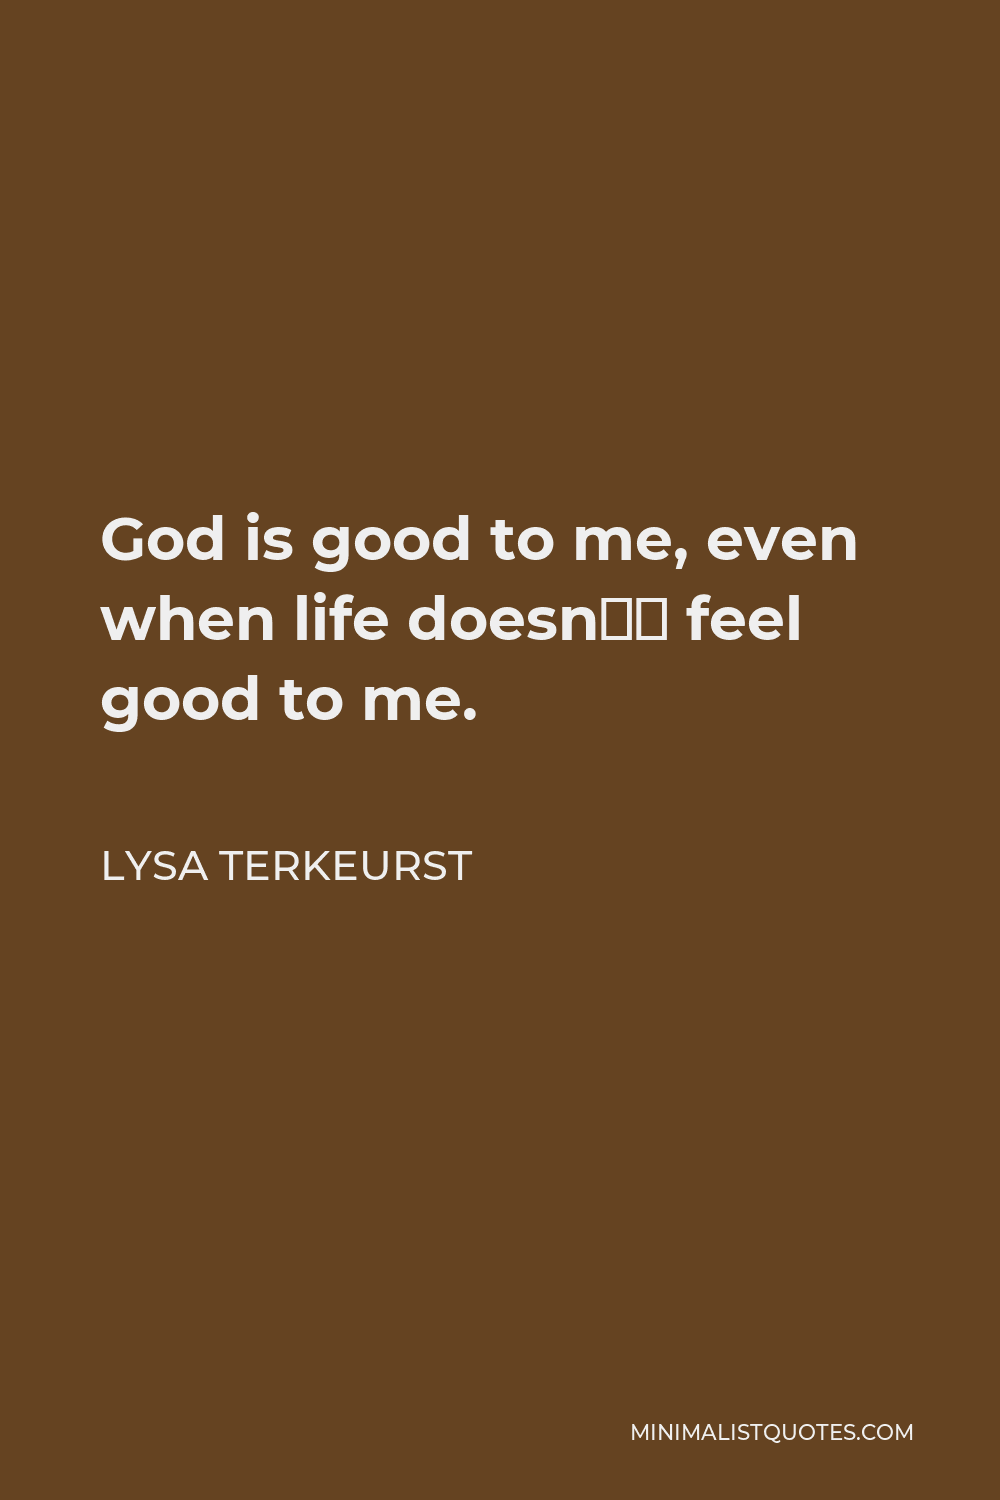 Lysa TerKeurst Quote - God is good to me, even when life doesn't feel good to me.